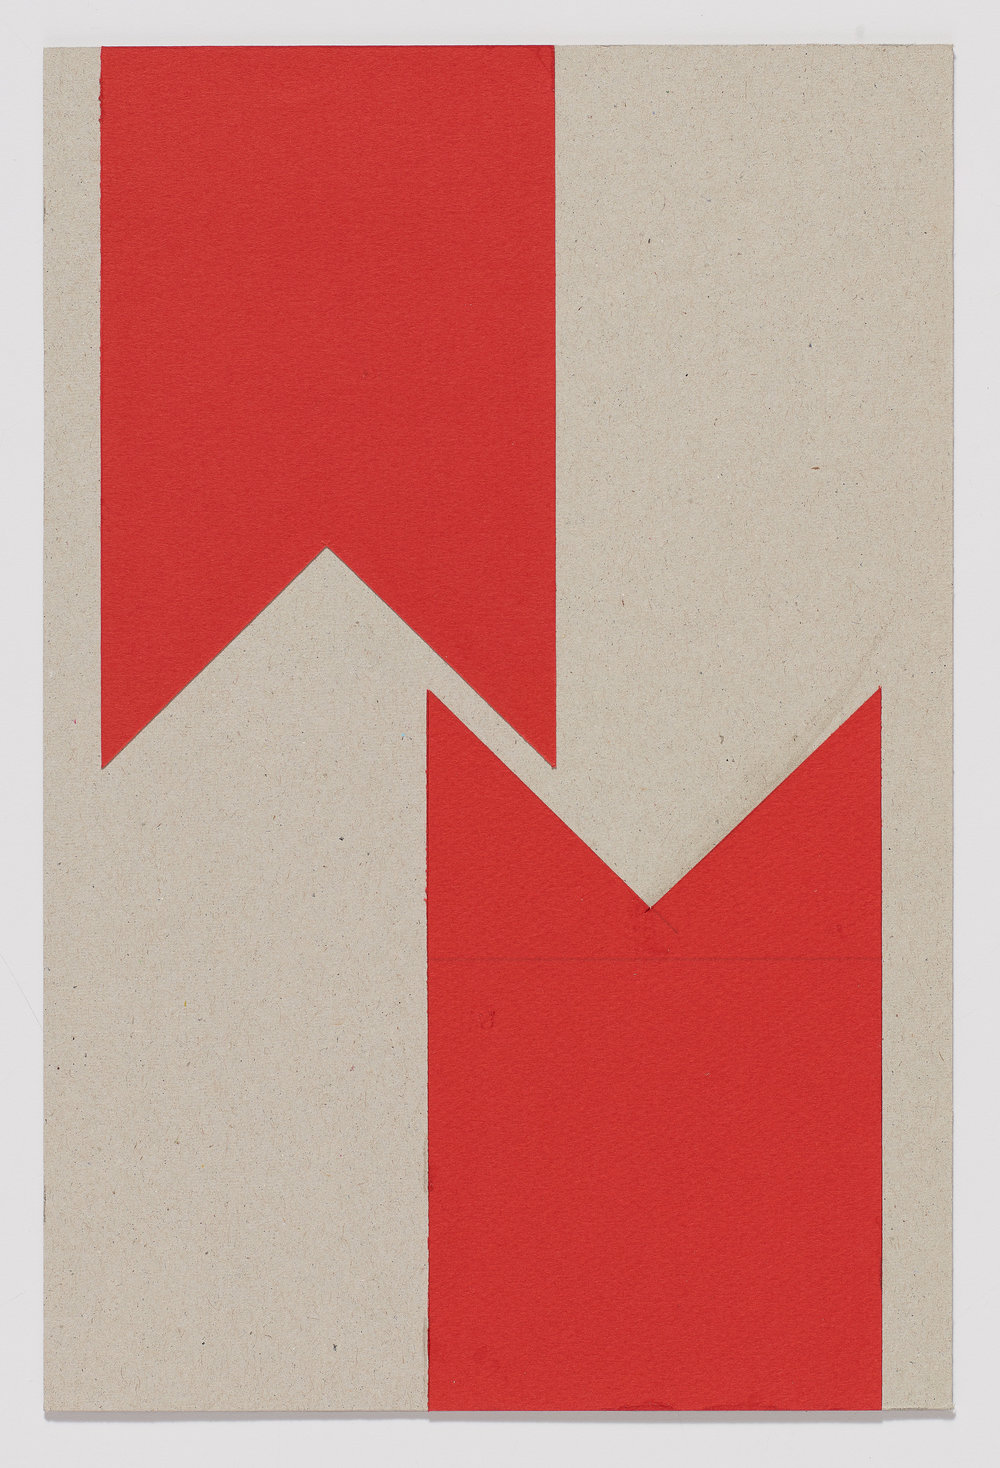 2 Lettres M (du cycle M Comme Malevich)